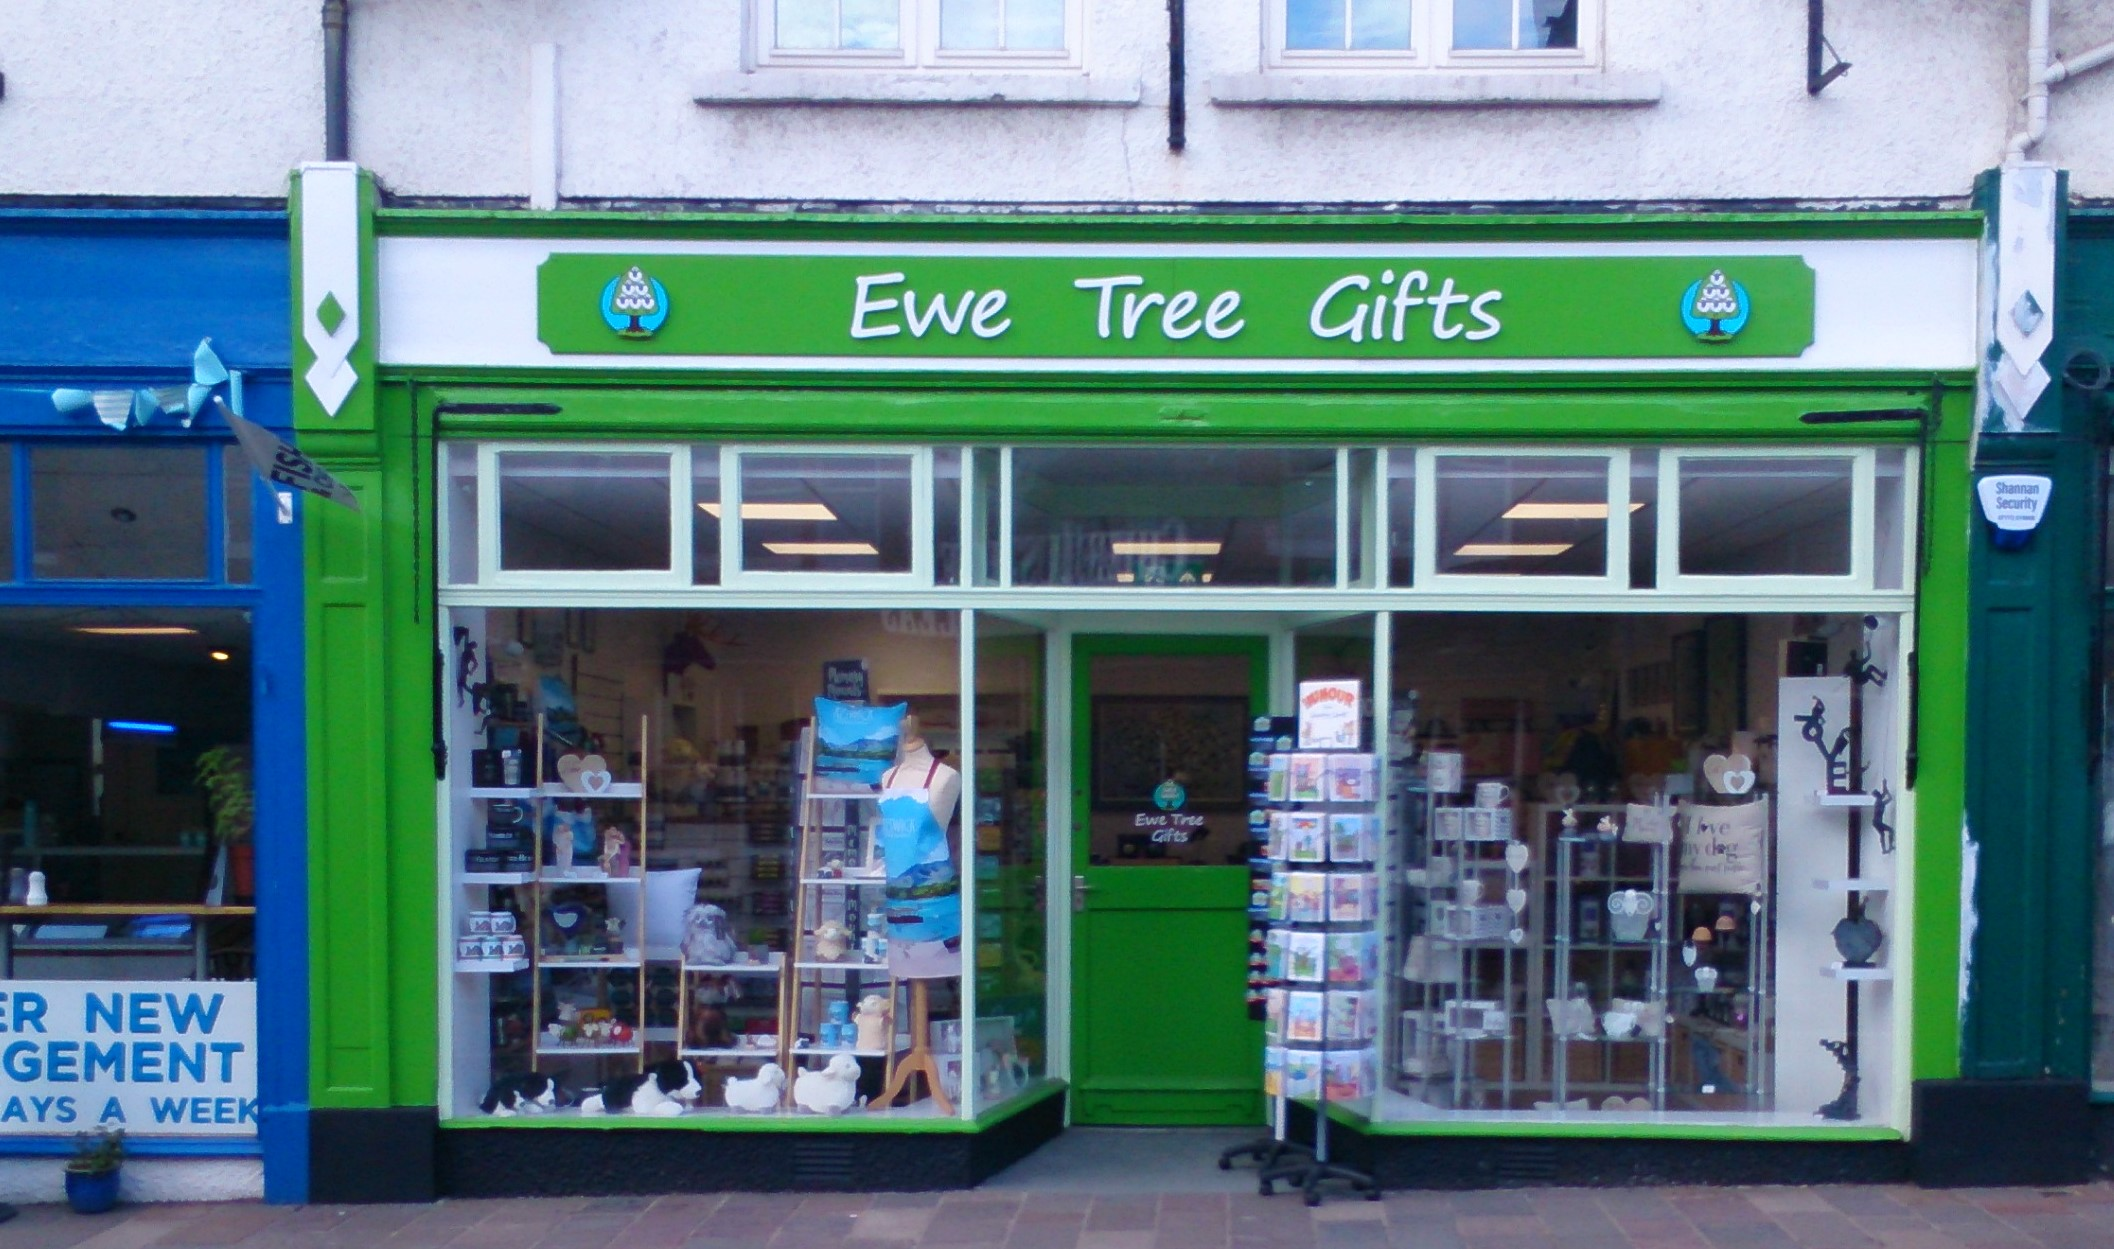 Ewe Tree Gifts   We have a fine selection of gifts for most occasions. There is a variety of contemporary art, jewellery, scarves, bags and quirky pottery. Derwentwater is the heart of Keswick and to celebrate that a modern retro design has been chosen for a range of souvenir items including mugs, coasters, fridge magnets and cushions. Our shop, which has been totally refurbished, is bright, light and airy with a fusion of fragrances from scented bath bombs and candles.  9 Bank Street, Keswick, CA12 5DU  017687 74652